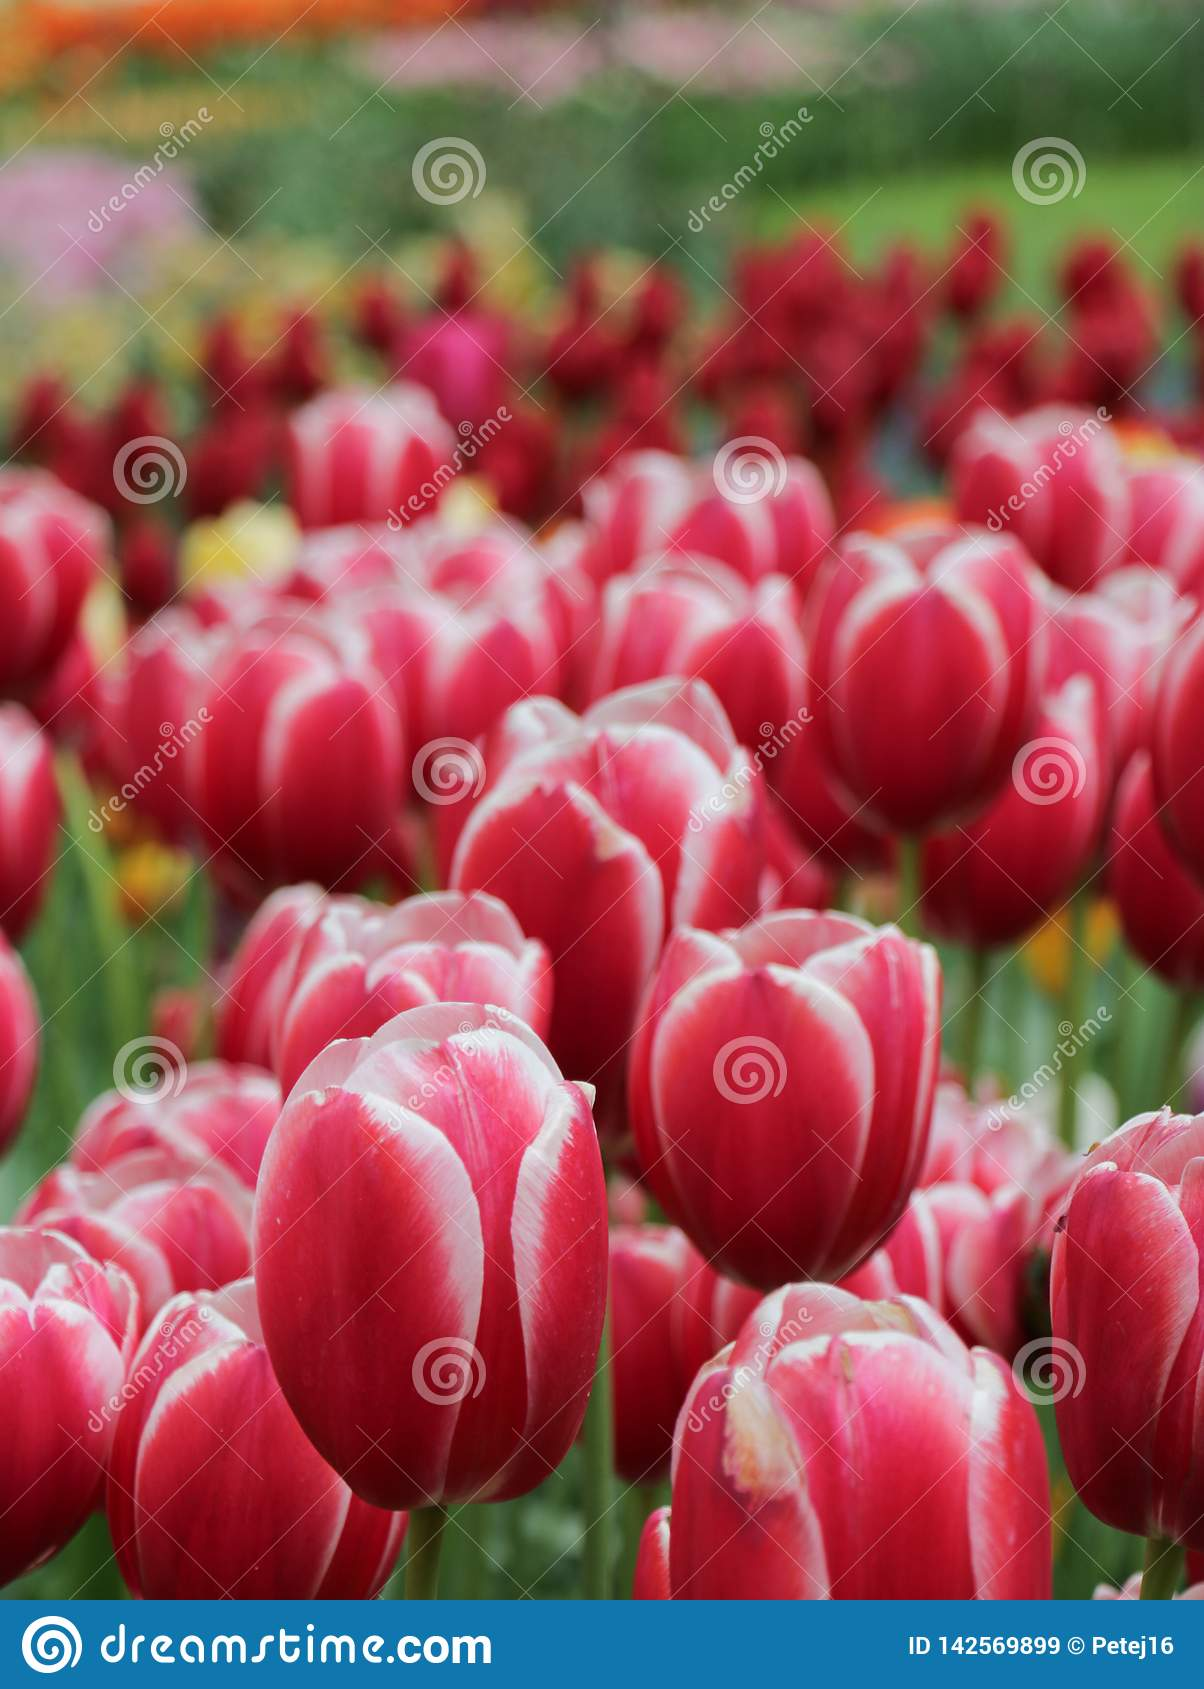 Closeup of variegated red tulip flowers